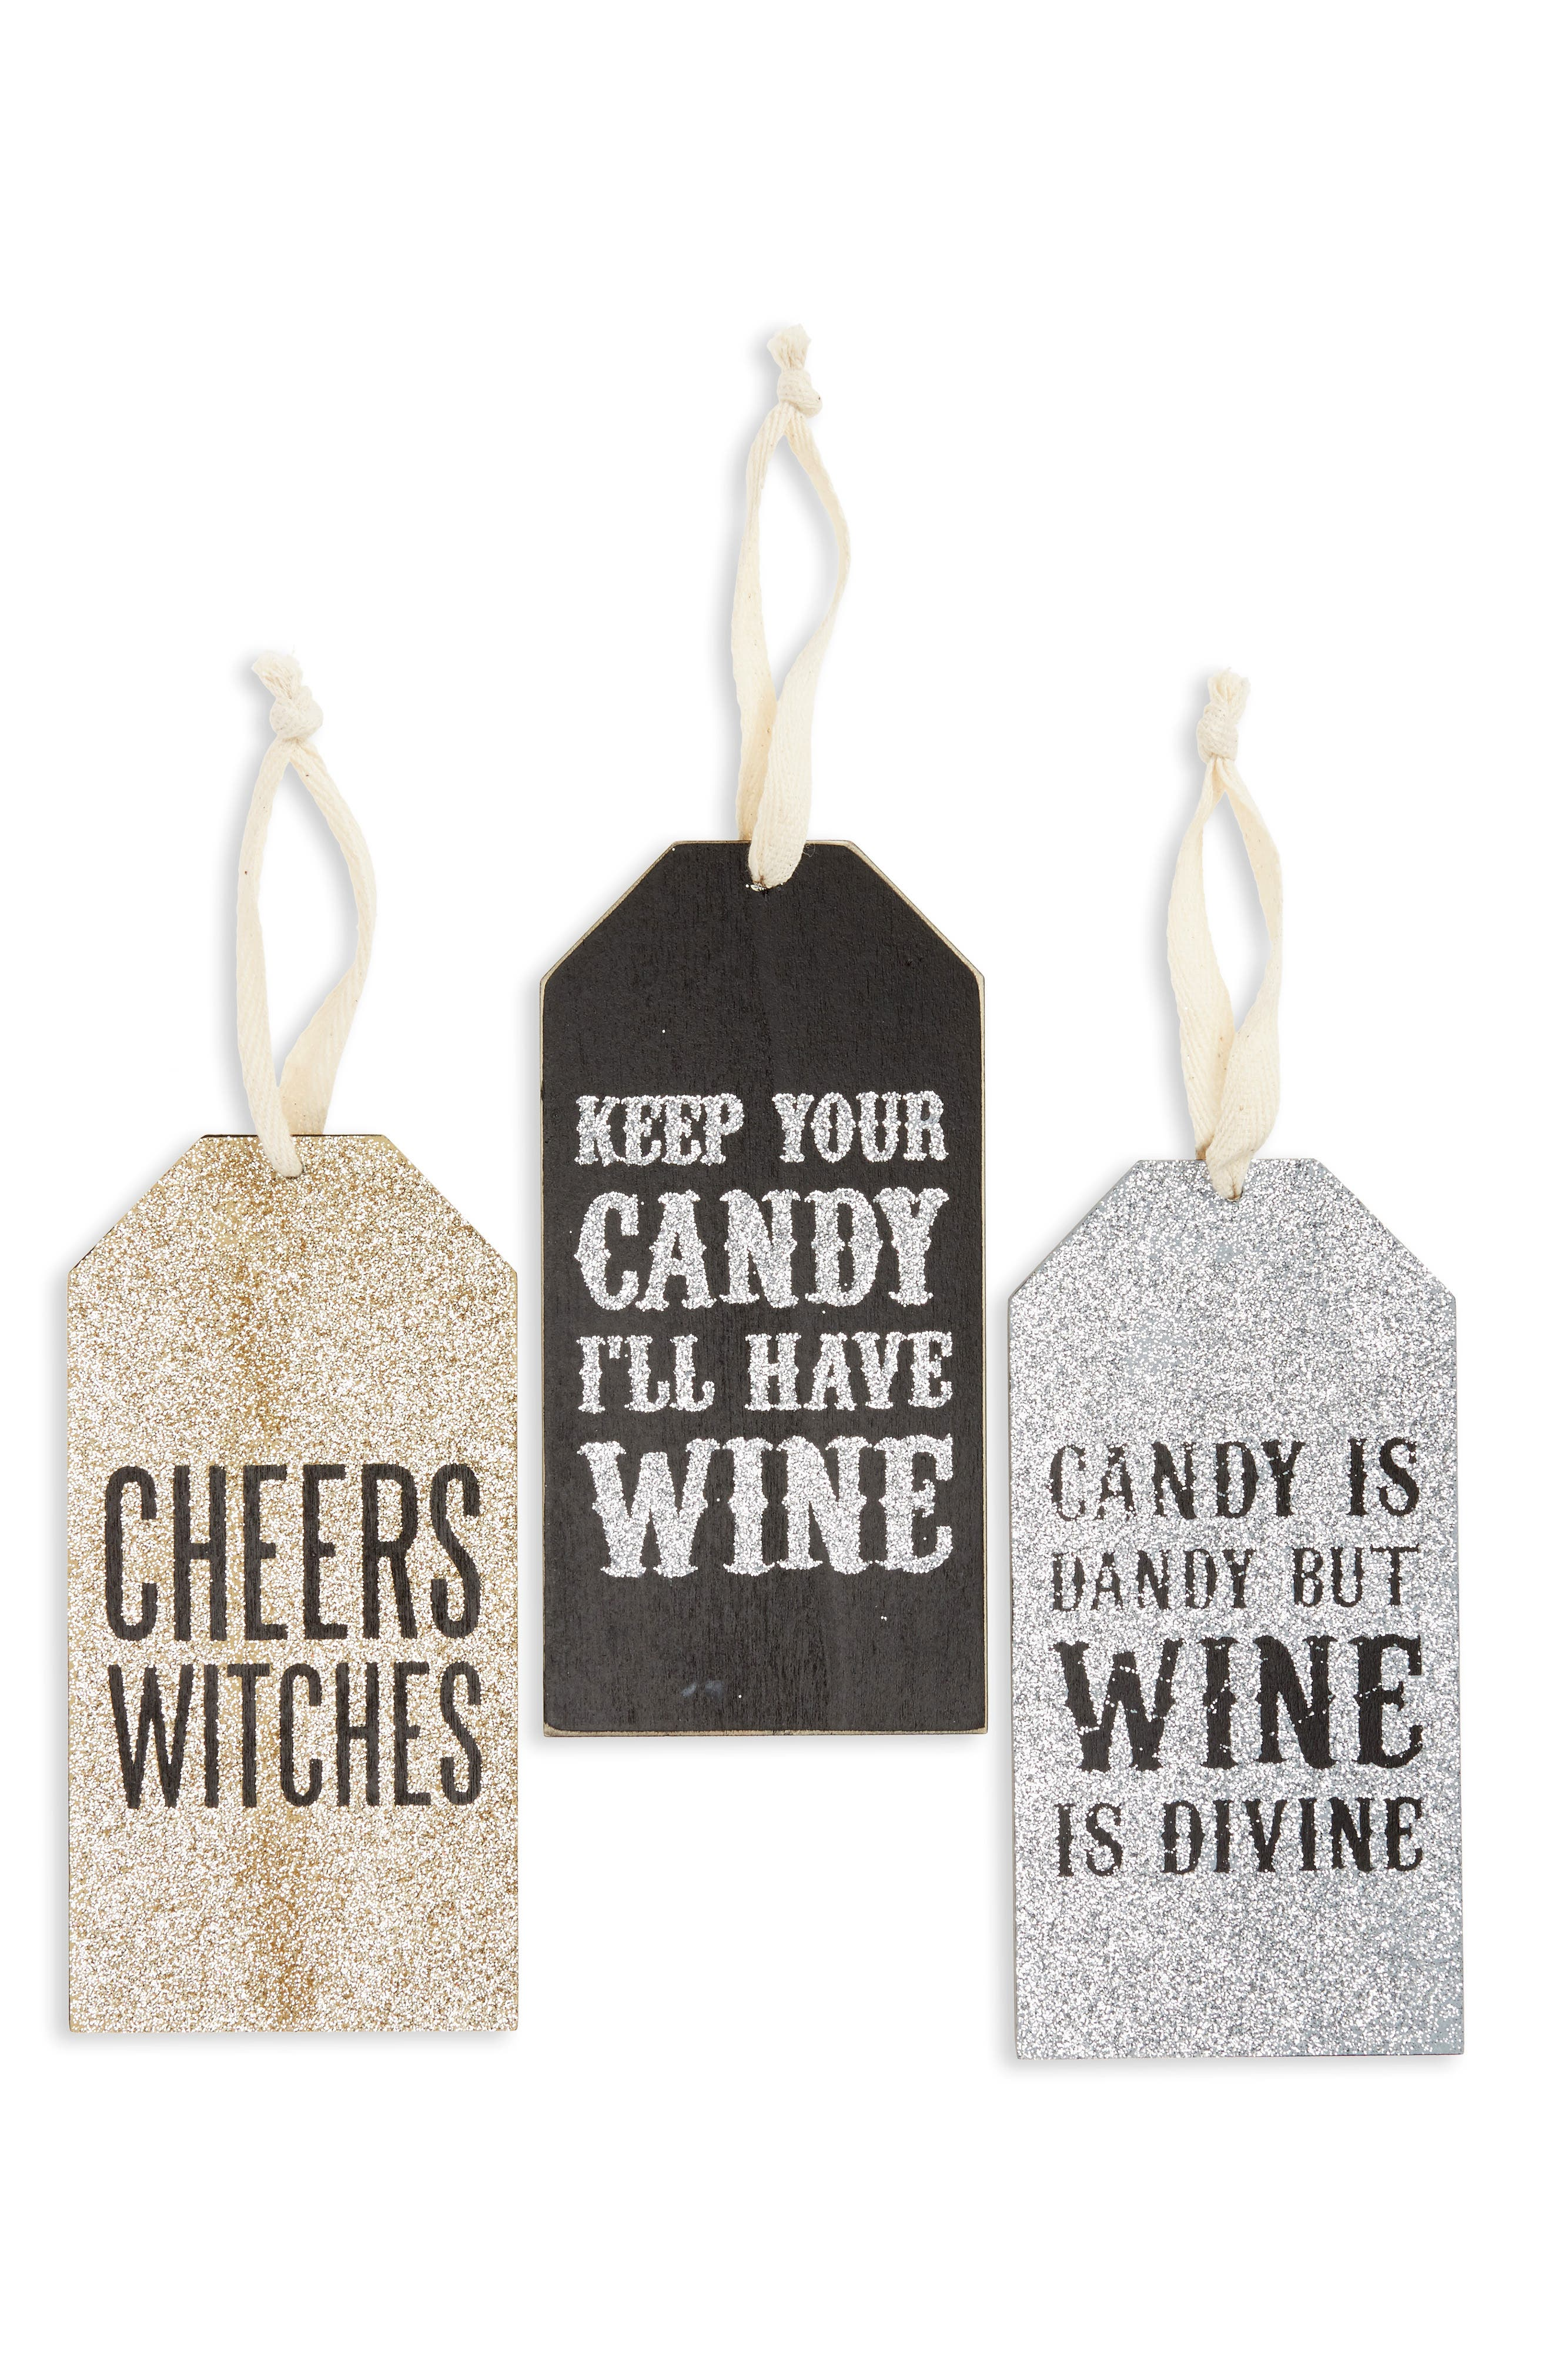 Primitives by Kathy Halloween Set of 3 Wine Bottle Tags